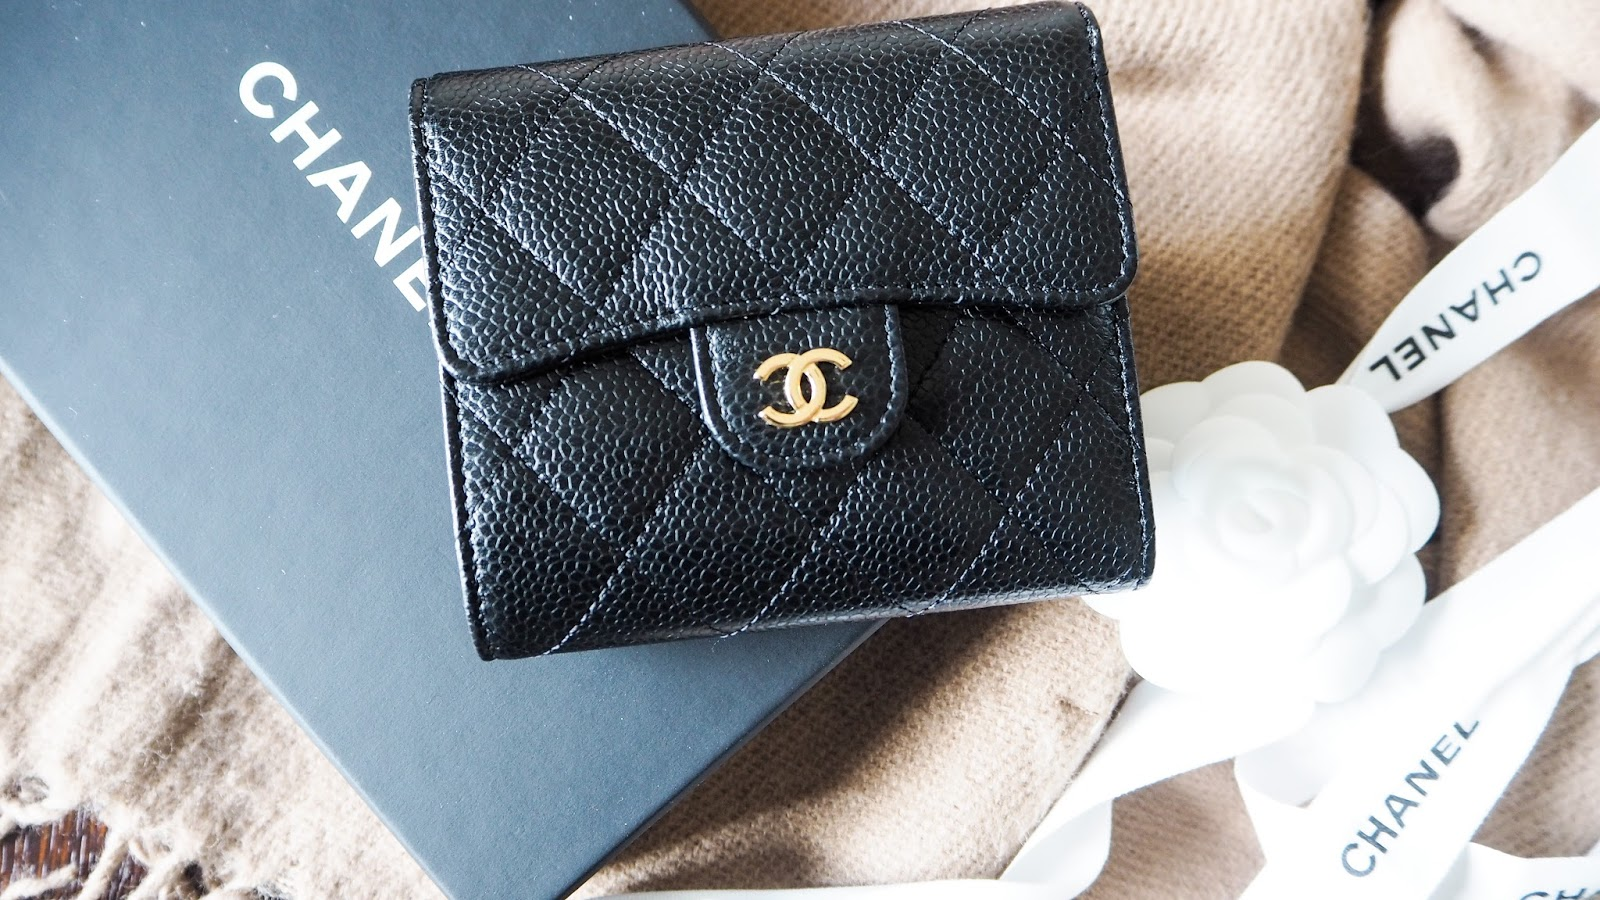 Chanel classic small lamskin wallet, photos and review